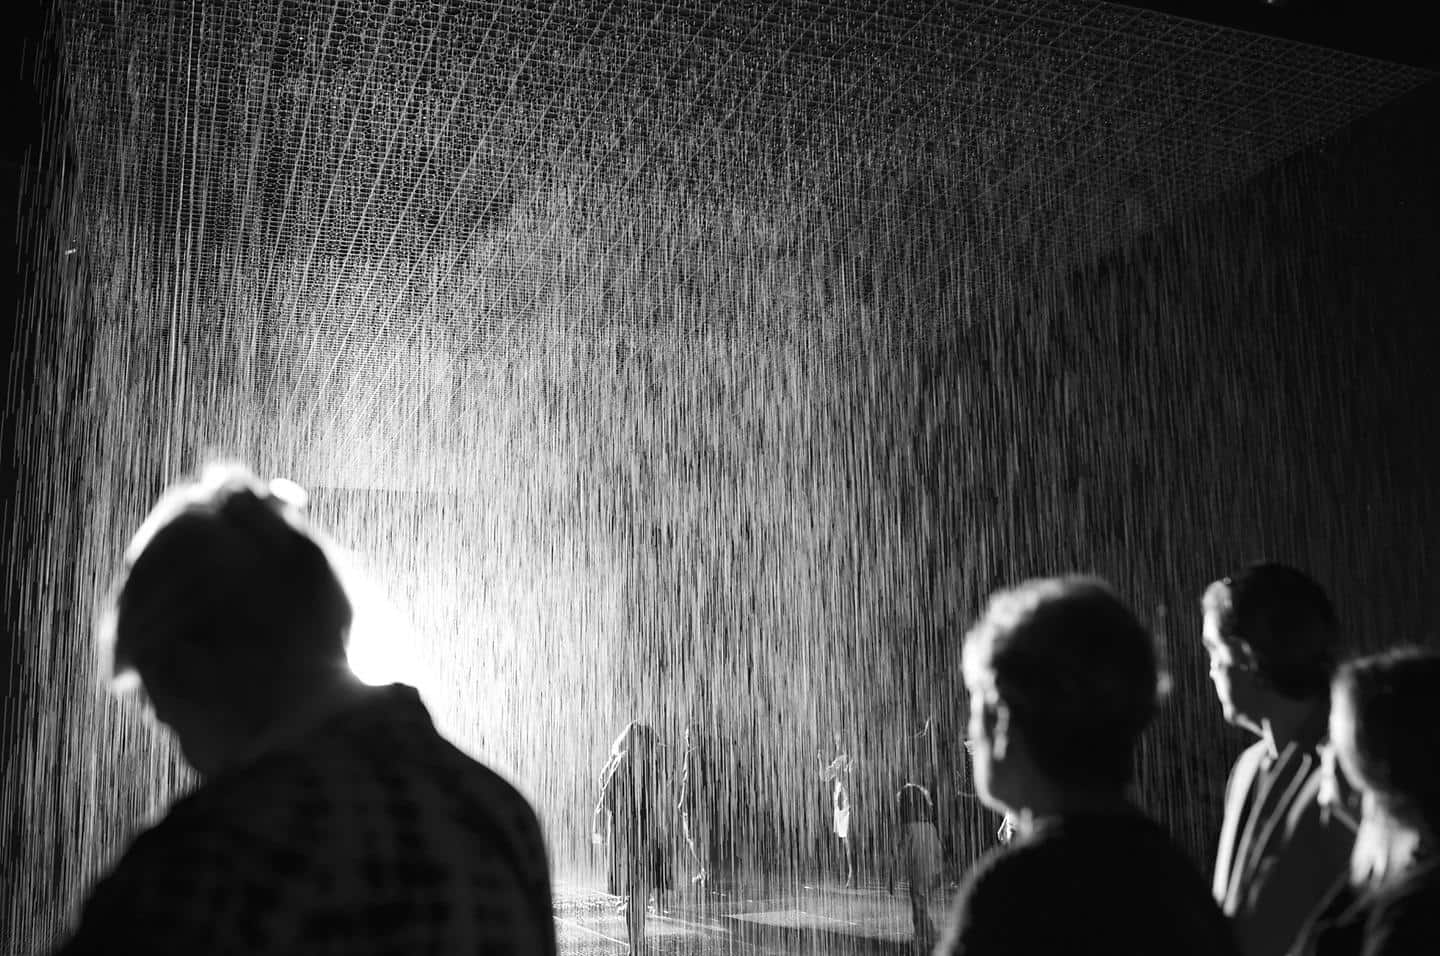 Hyundai Motor and LACMA's first project 'Rain Room' exhibit opens in Los Angeles 3